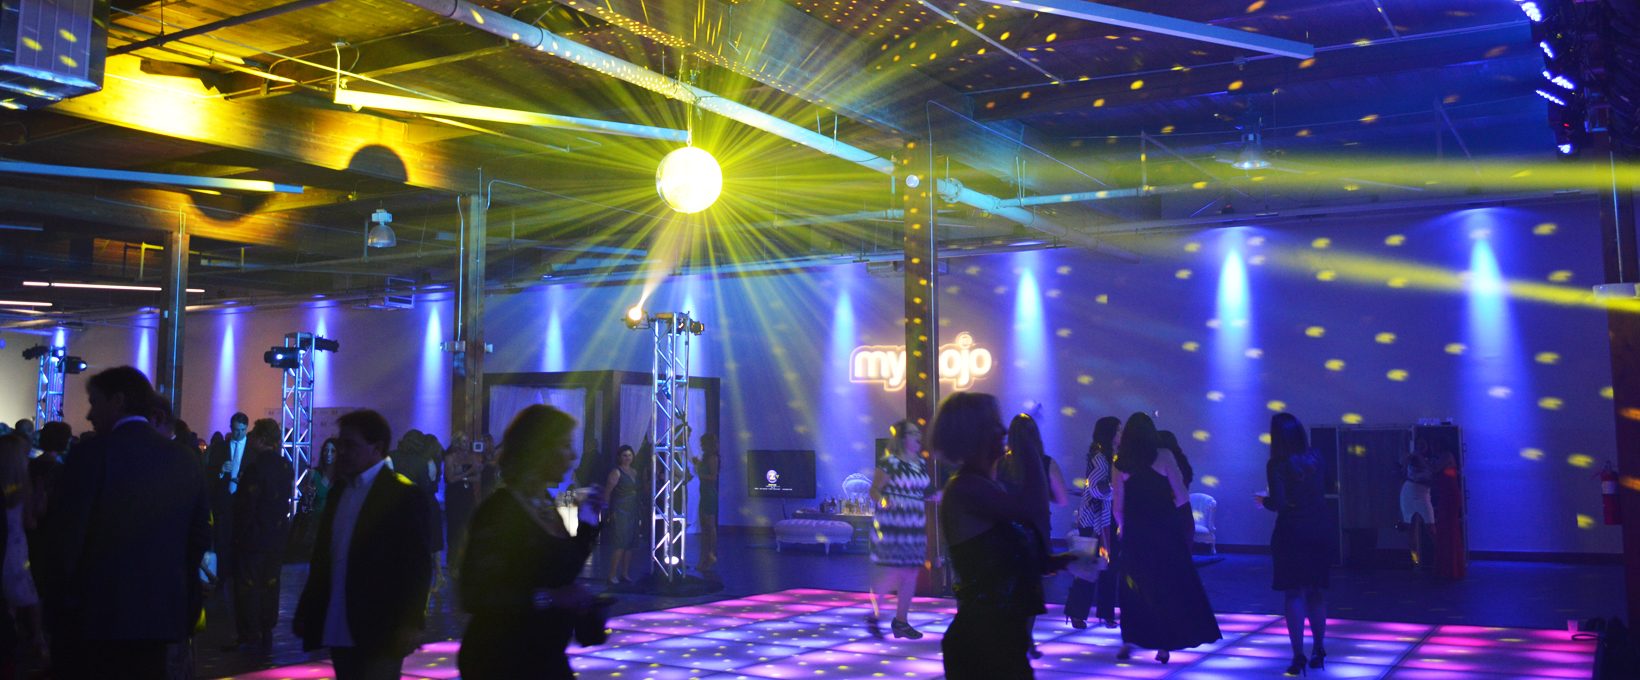 Image of LED Dance Floor